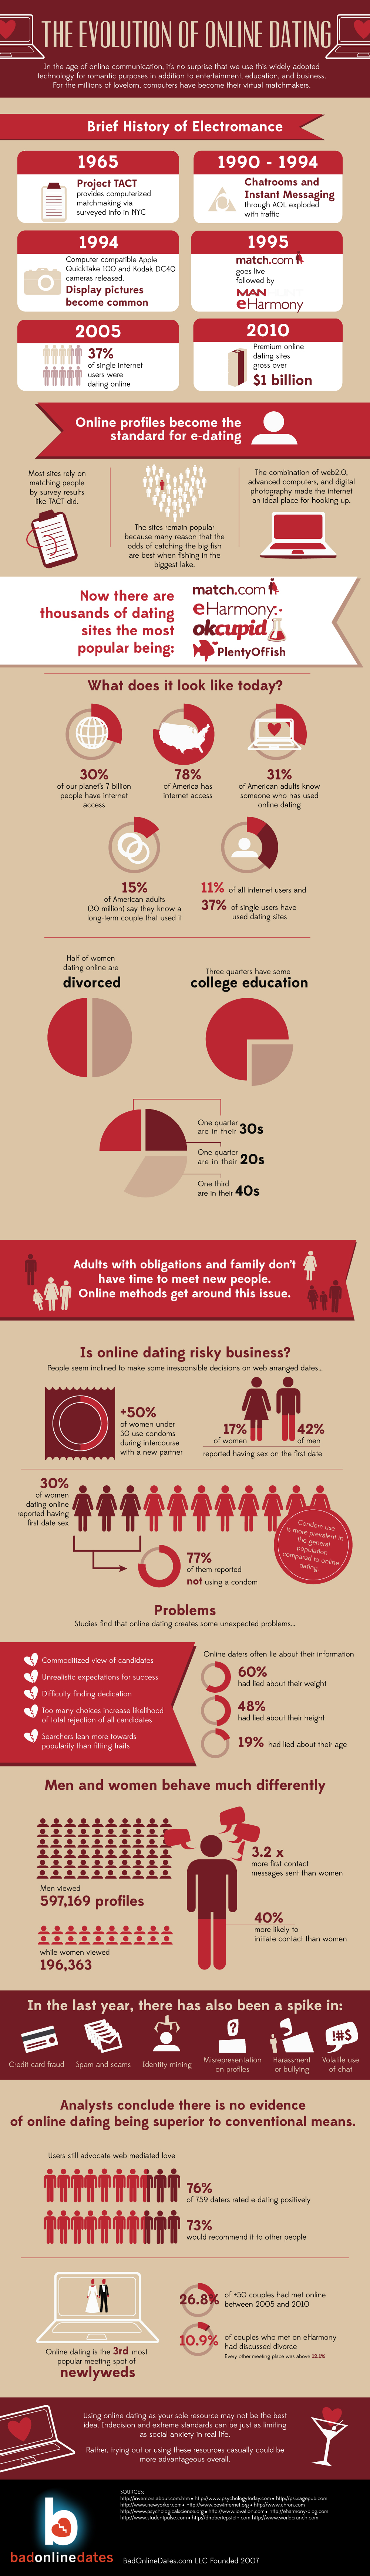 topics for online dating